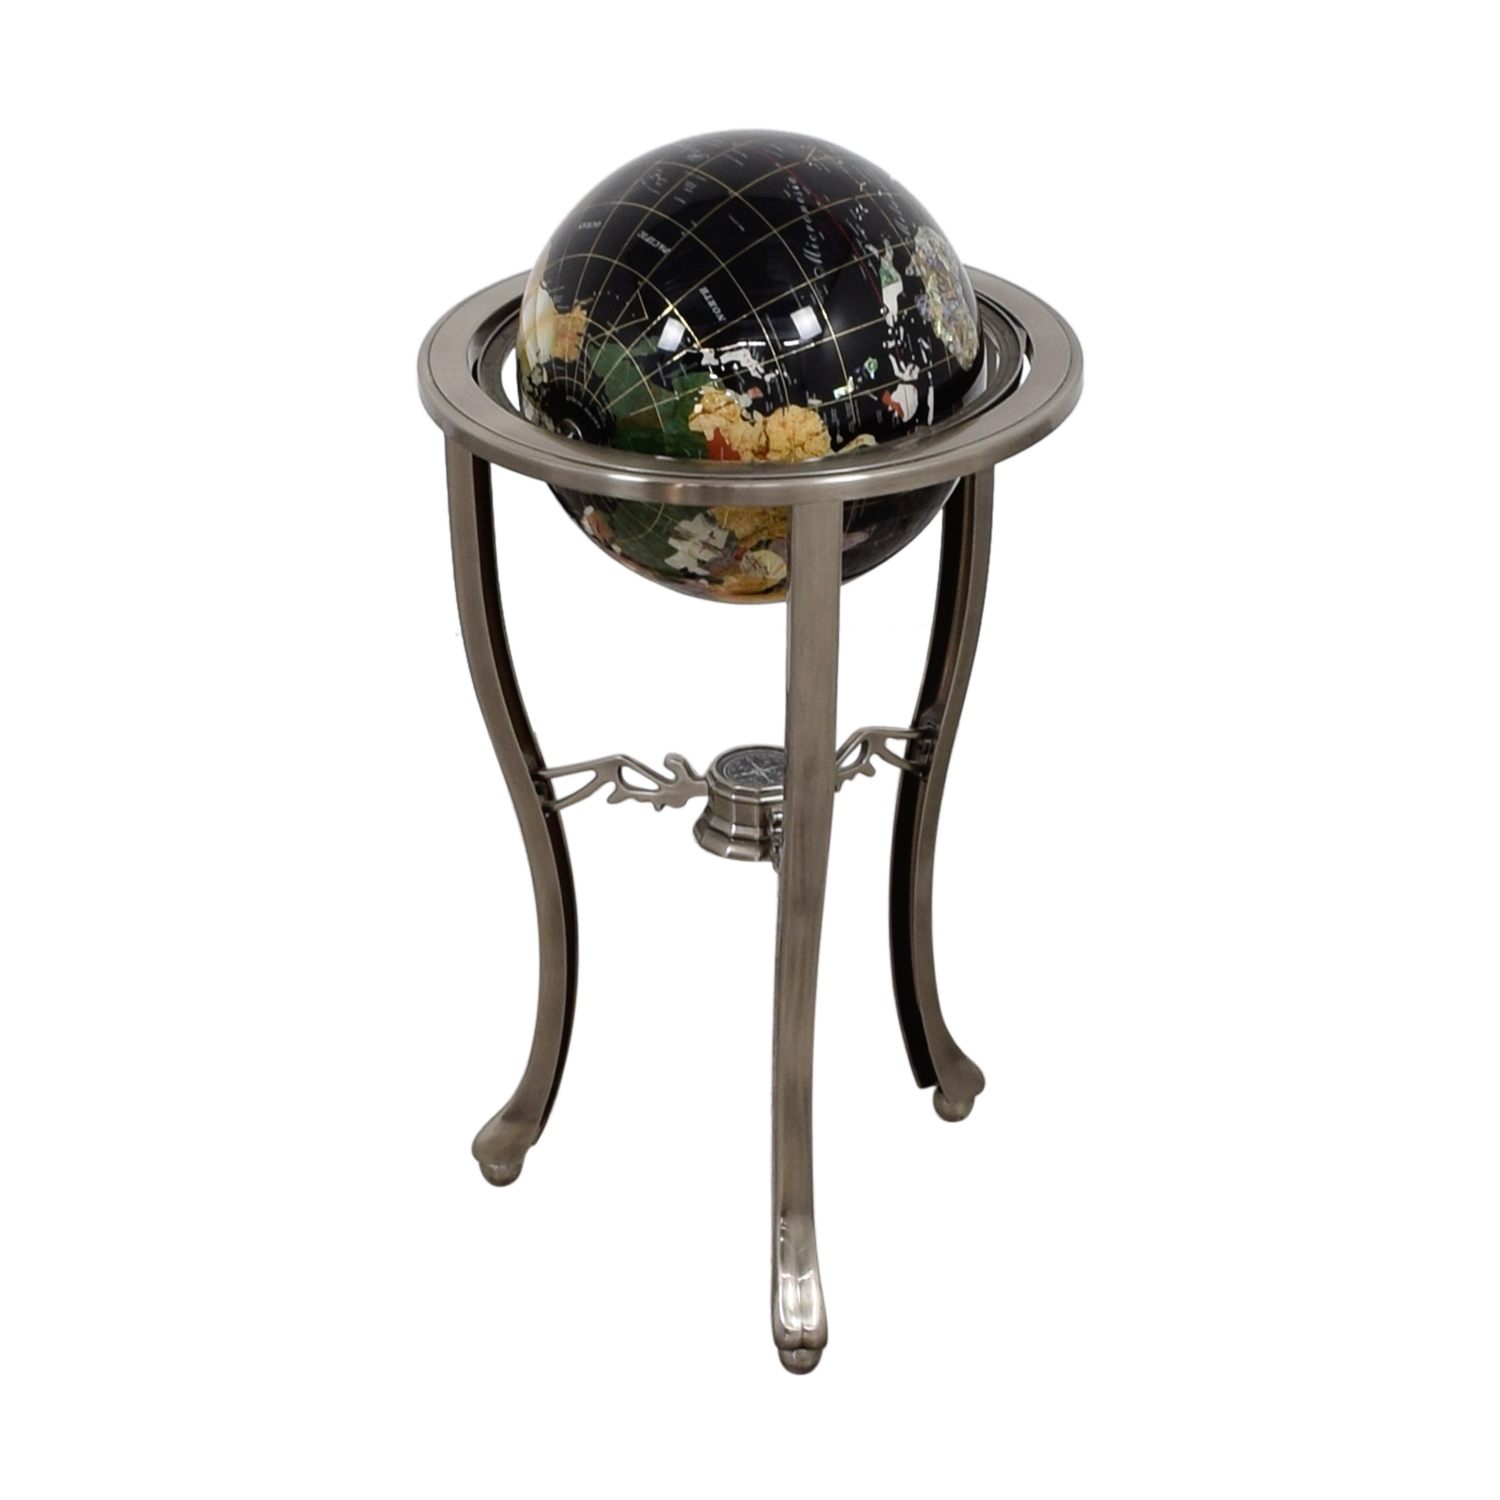 Semi Precious Stone Floor Standing Globe Decorative Accents